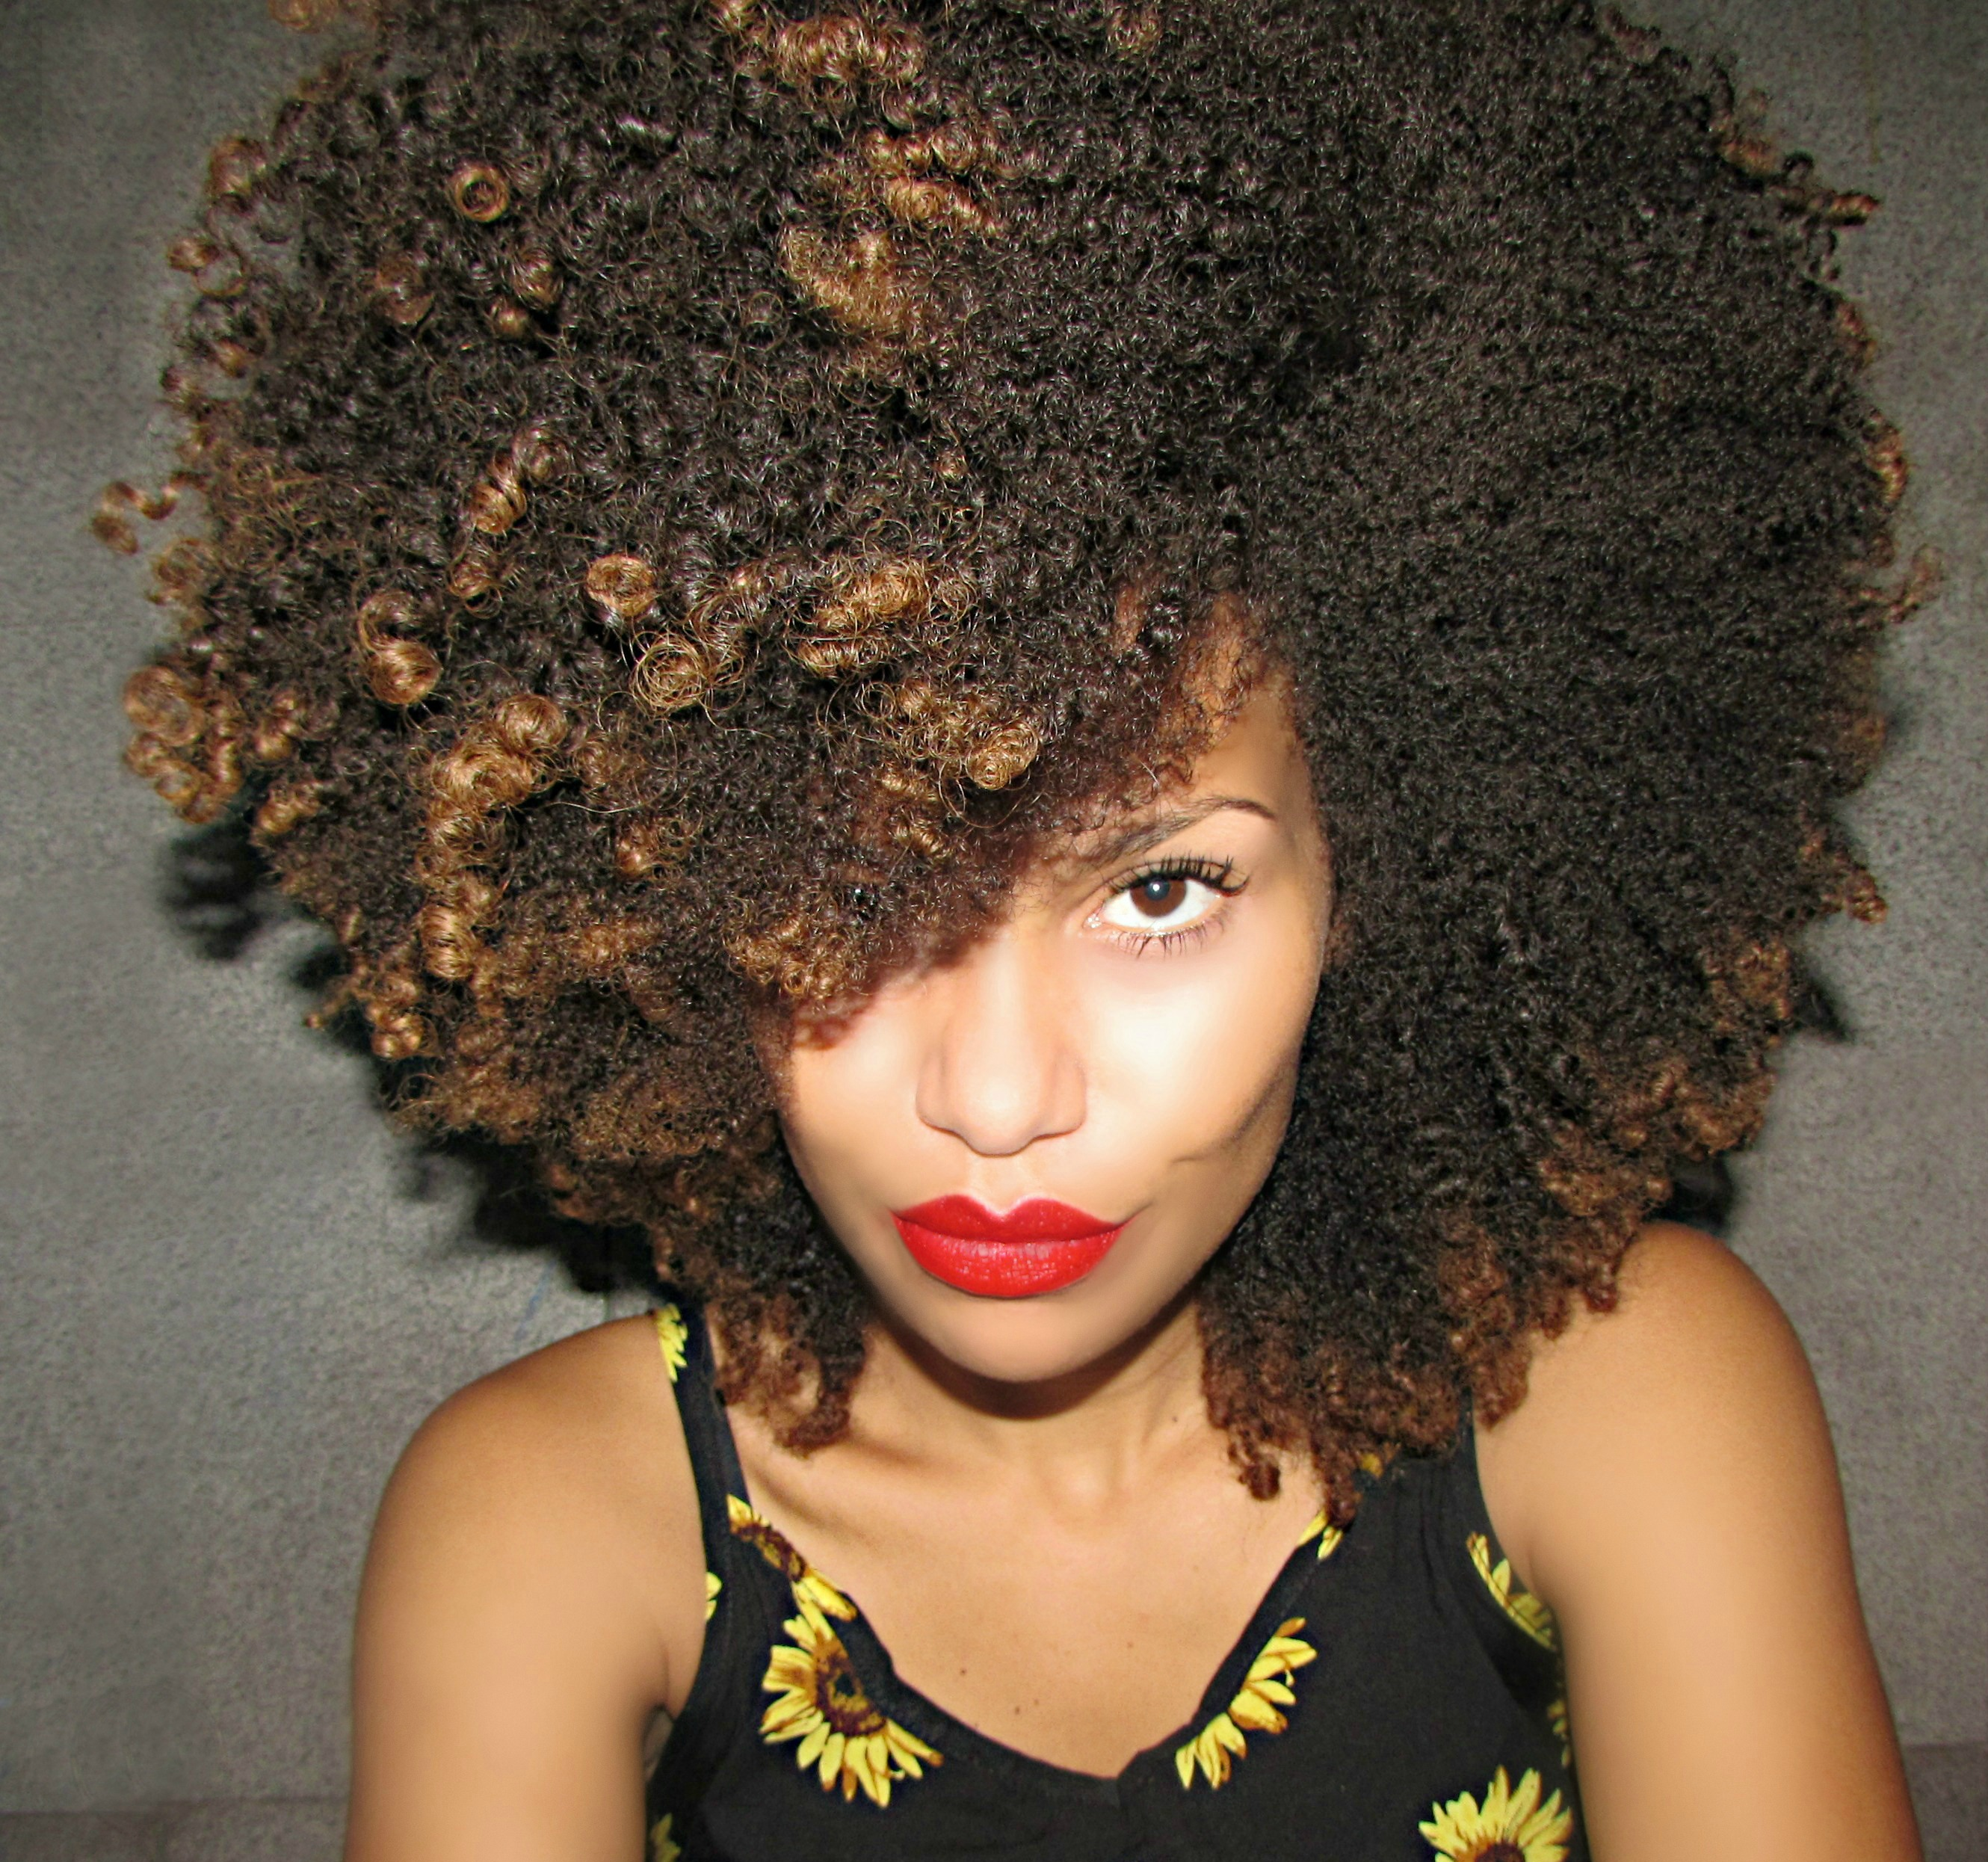 Loana from Sao Paulo // 3C/4A Natural Hair | Black Girl with Long Hair